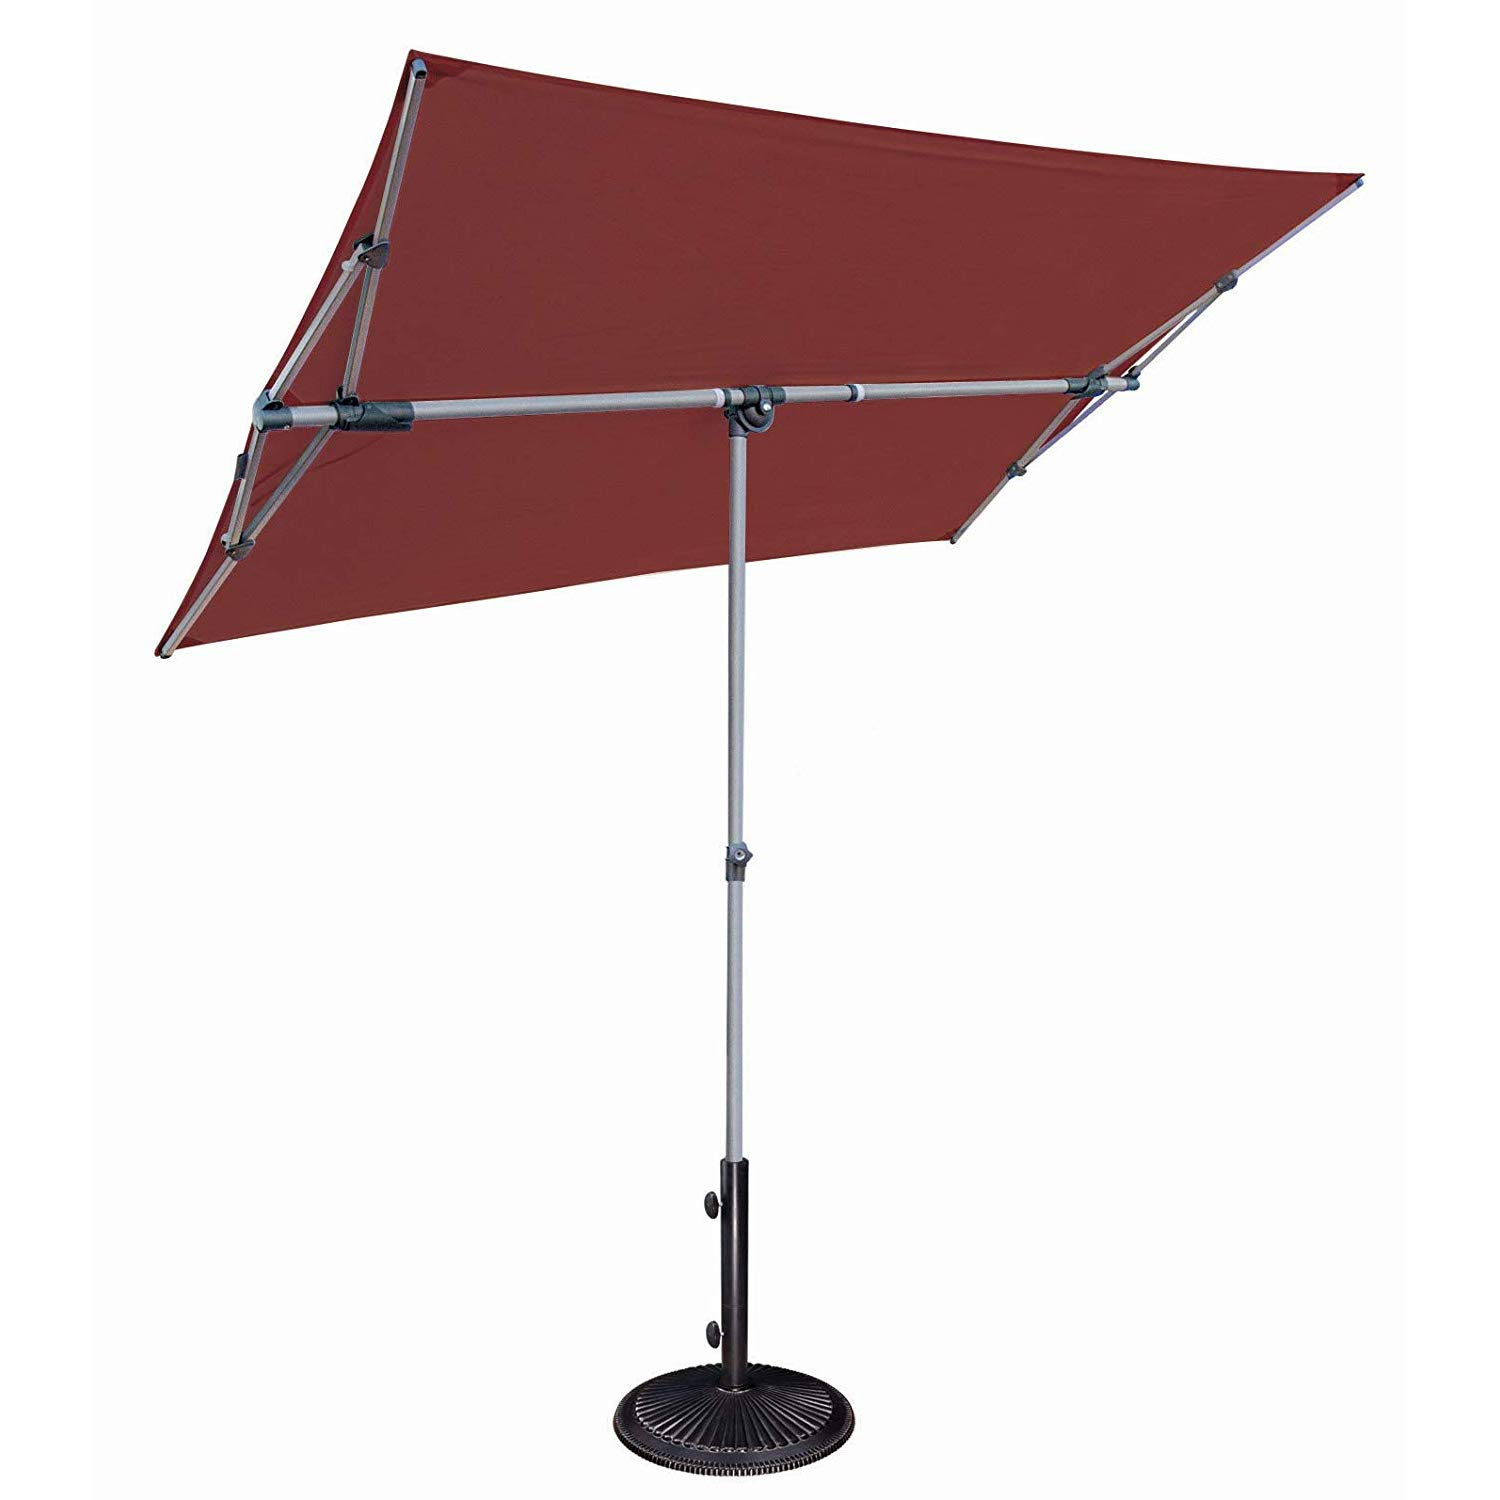 SimplyShade Capri Patio Umbrella in Deep Red